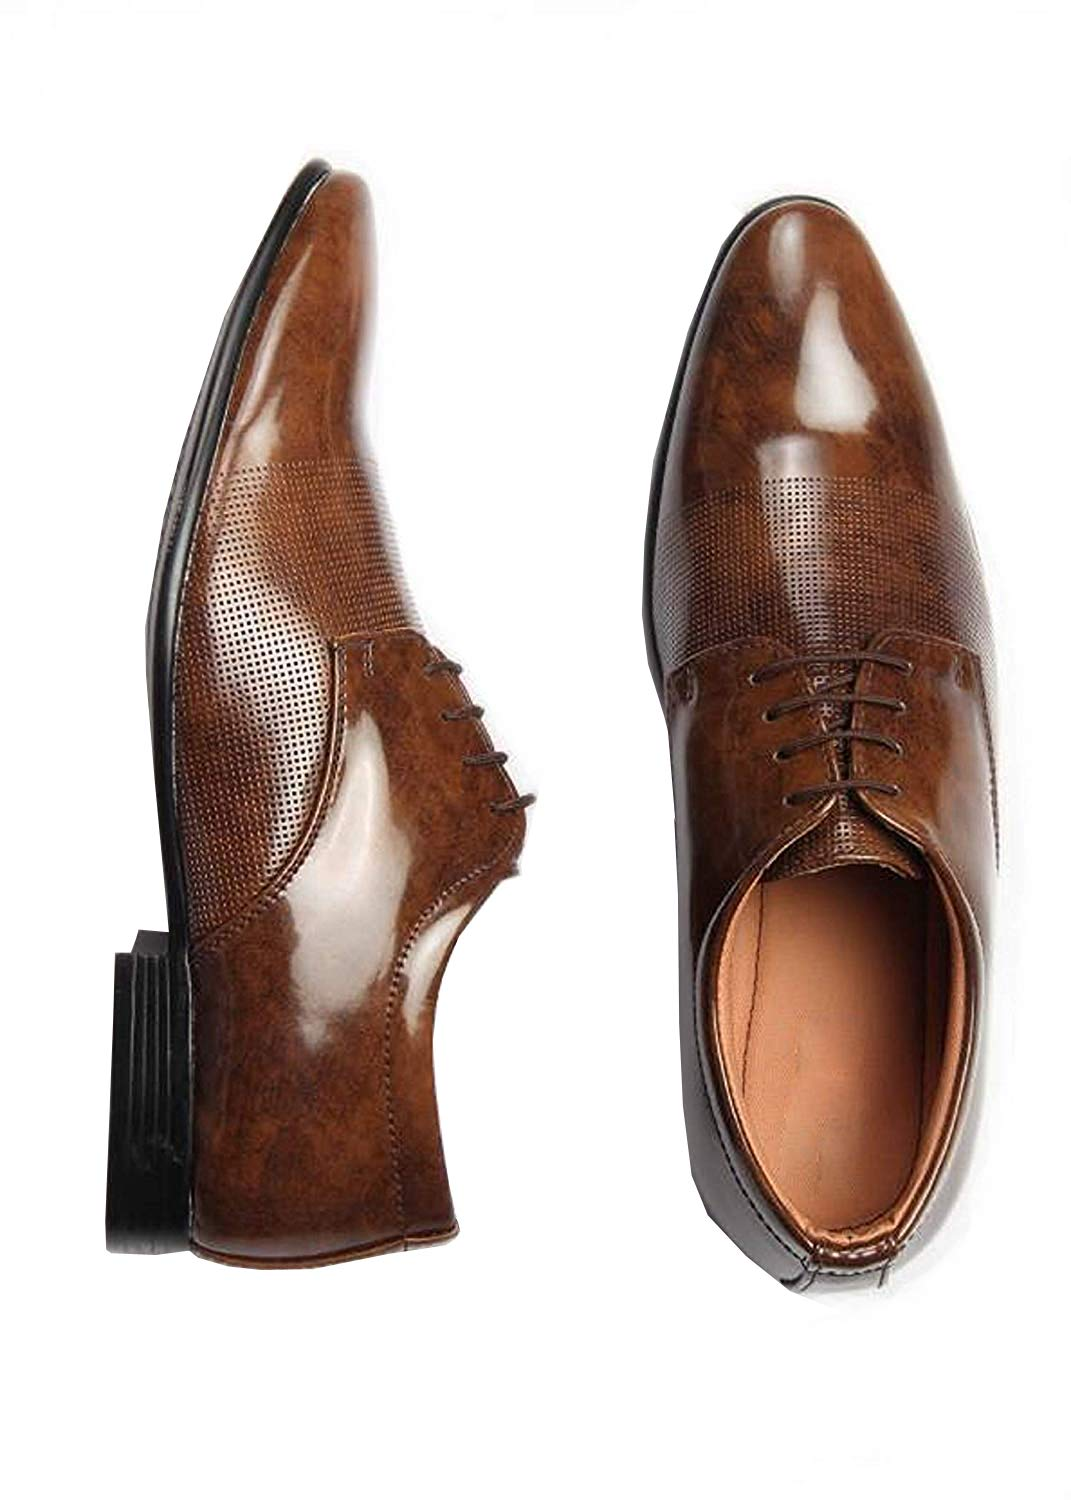 900db18cd71 Digitrendzz Men s Patent Leather Formal Shoes for Men s Formal Shoes  product image